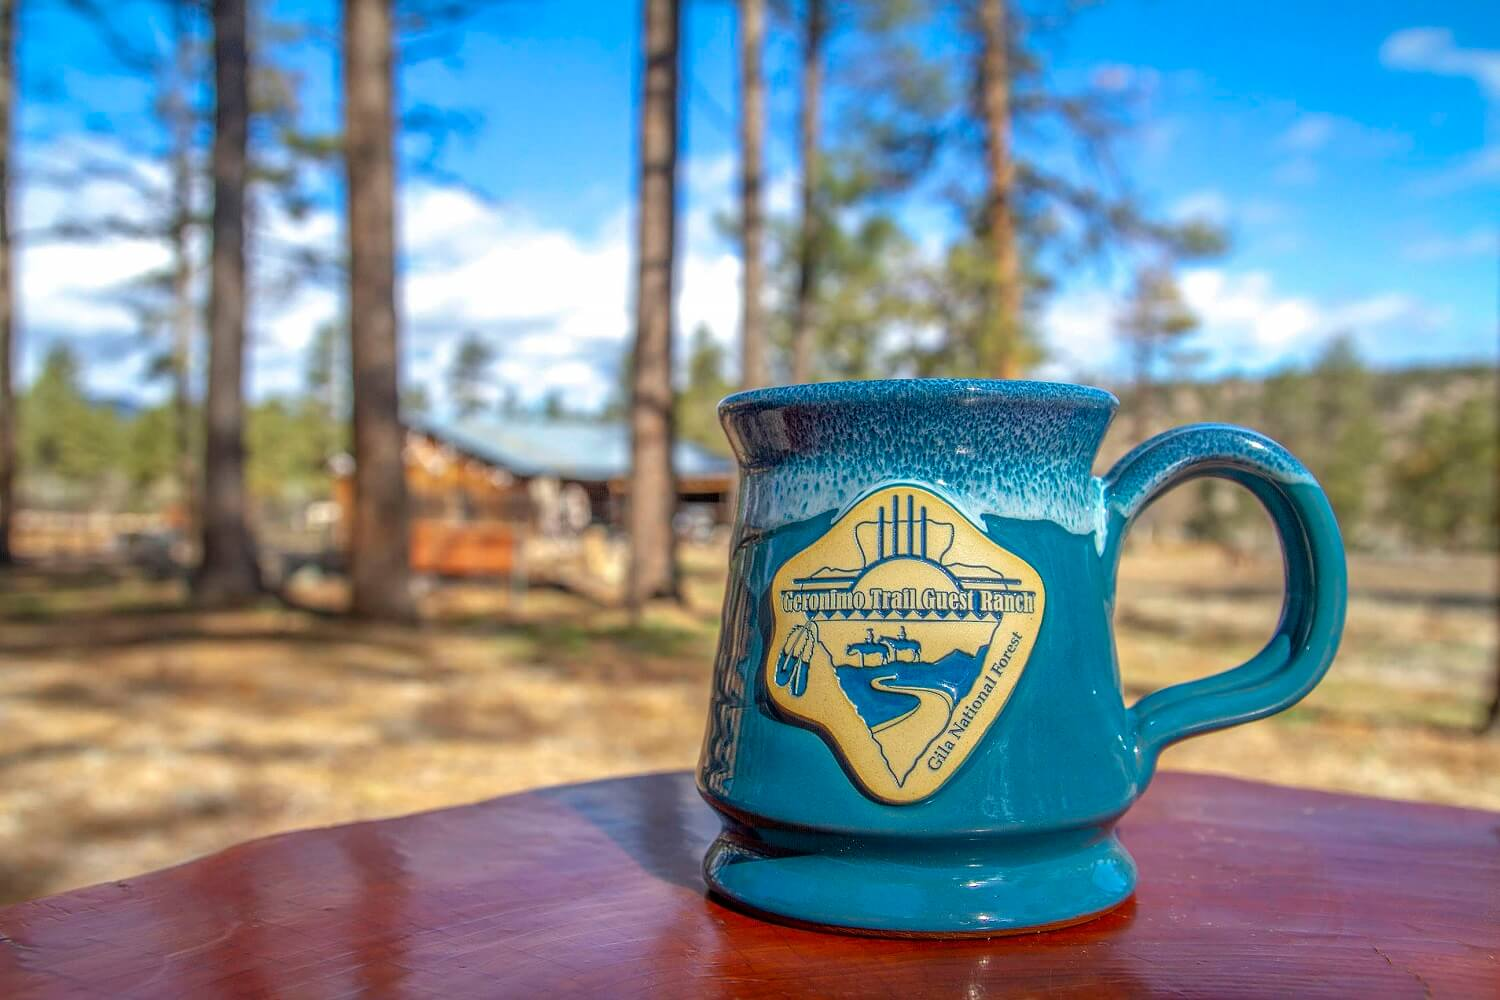 Geronimo Trail Guest Ranch Mug - Blue